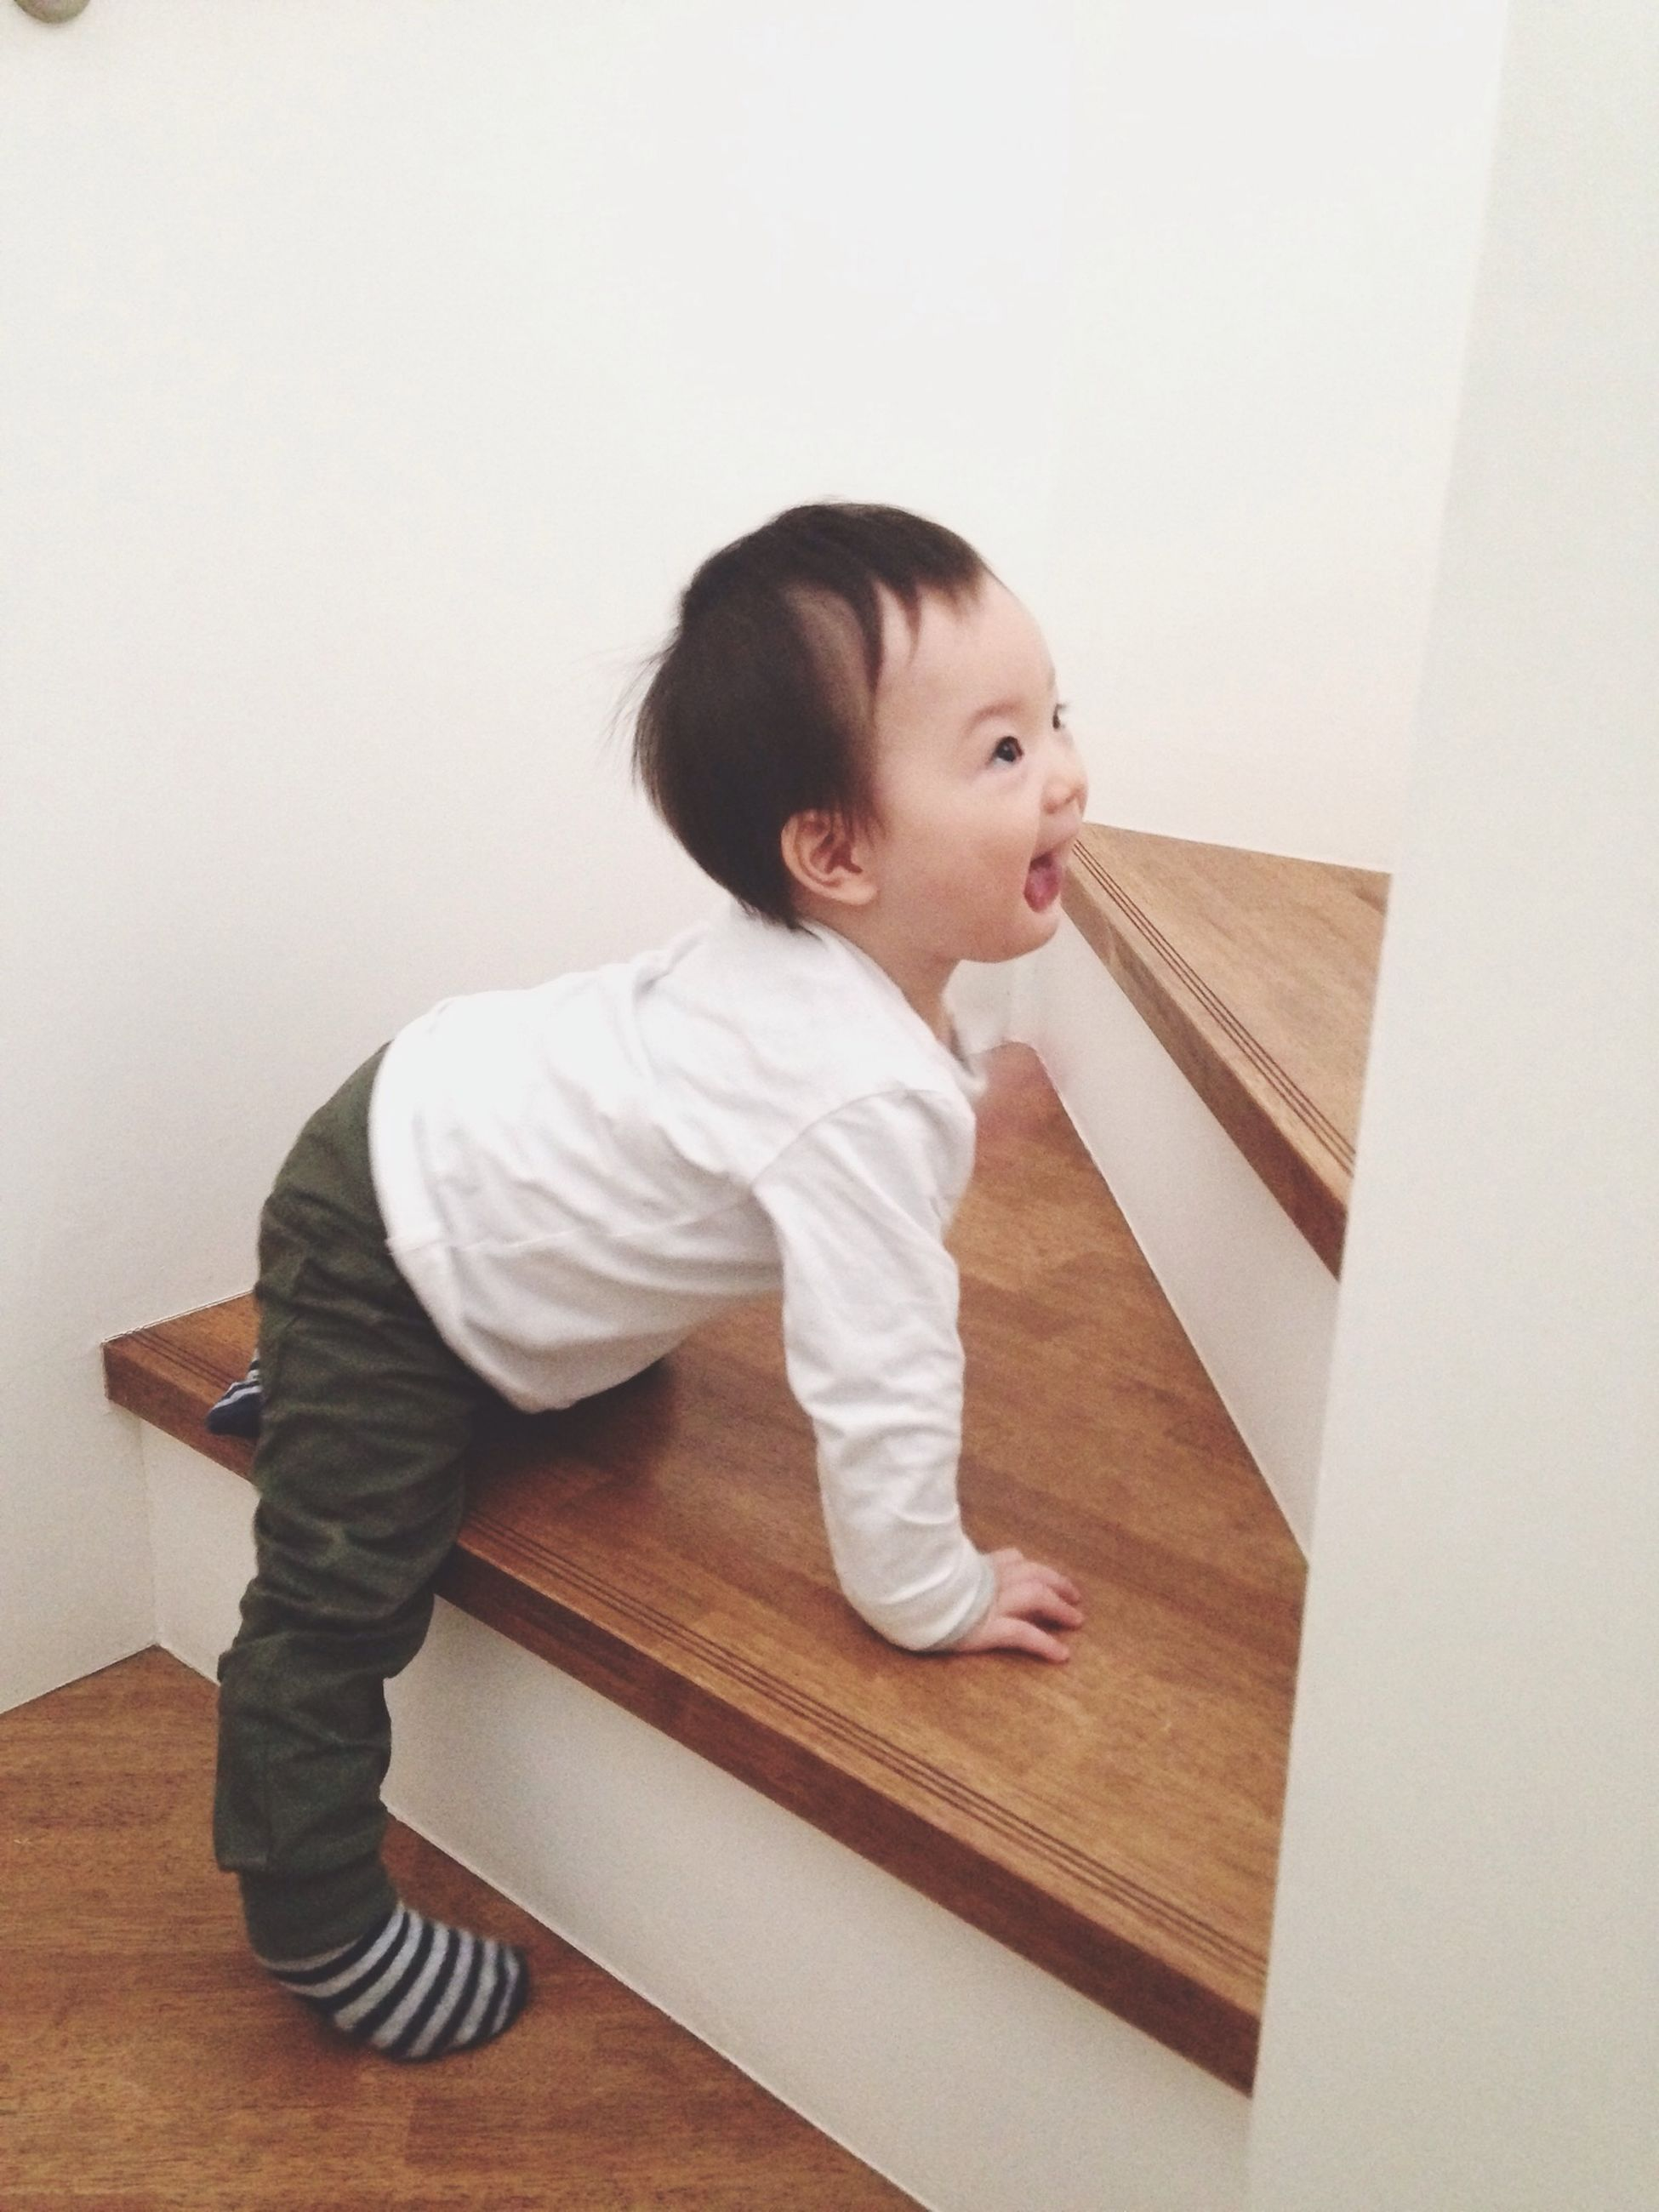 childhood, elementary age, innocence, person, cute, full length, indoors, casual clothing, boys, girls, lifestyles, leisure activity, toddler, high angle view, home interior, front view, baby, three quarter length